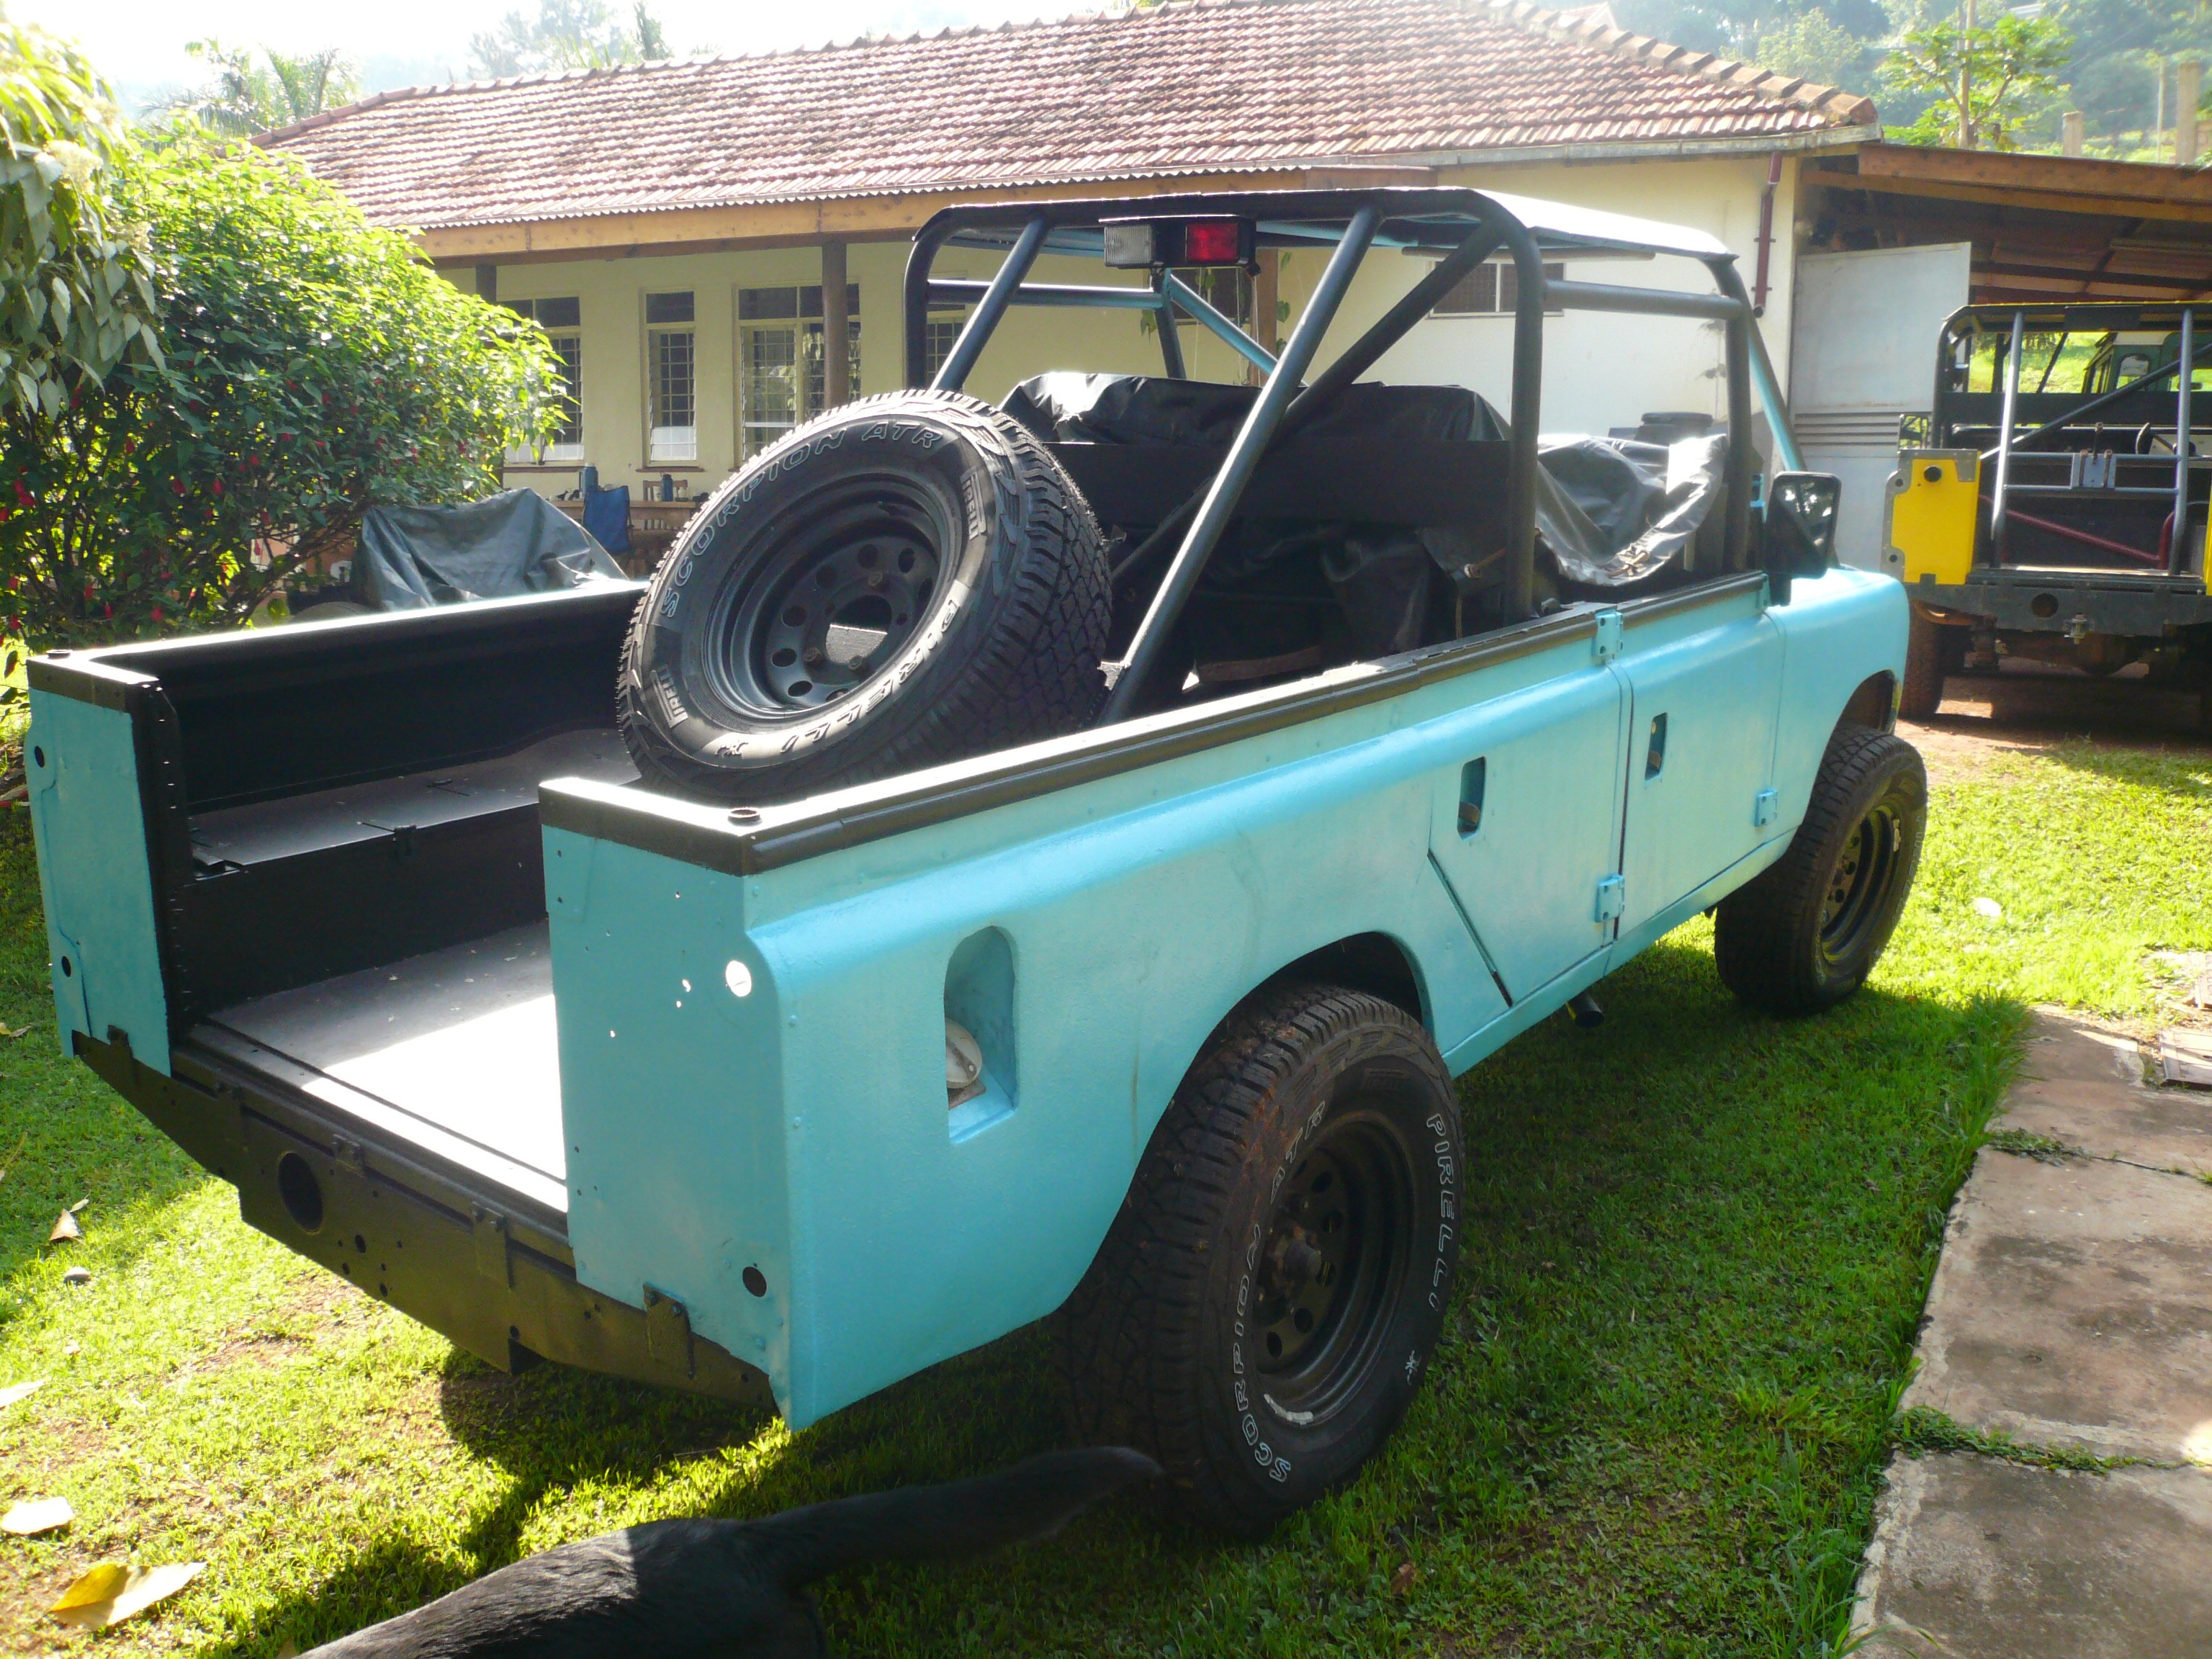 Landrover 109 Rebuild - In-Progress Photo